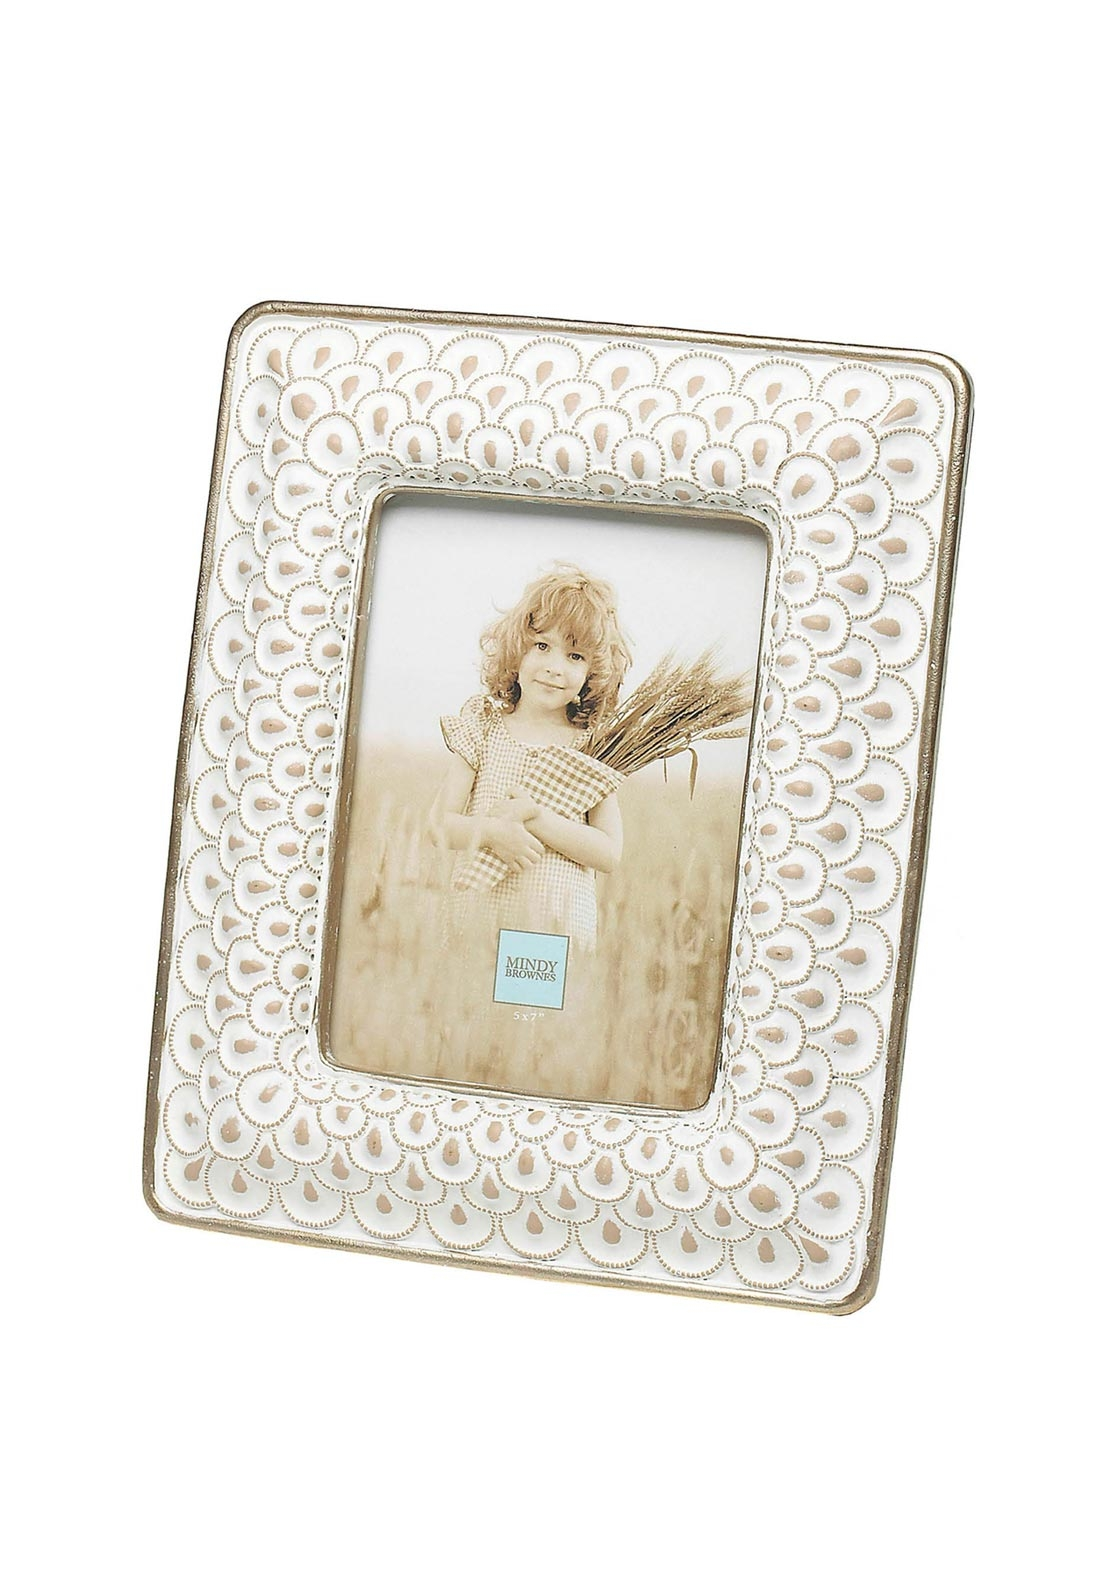 Mindy Brownes Sara Photo Frame 5 x 7, Cream